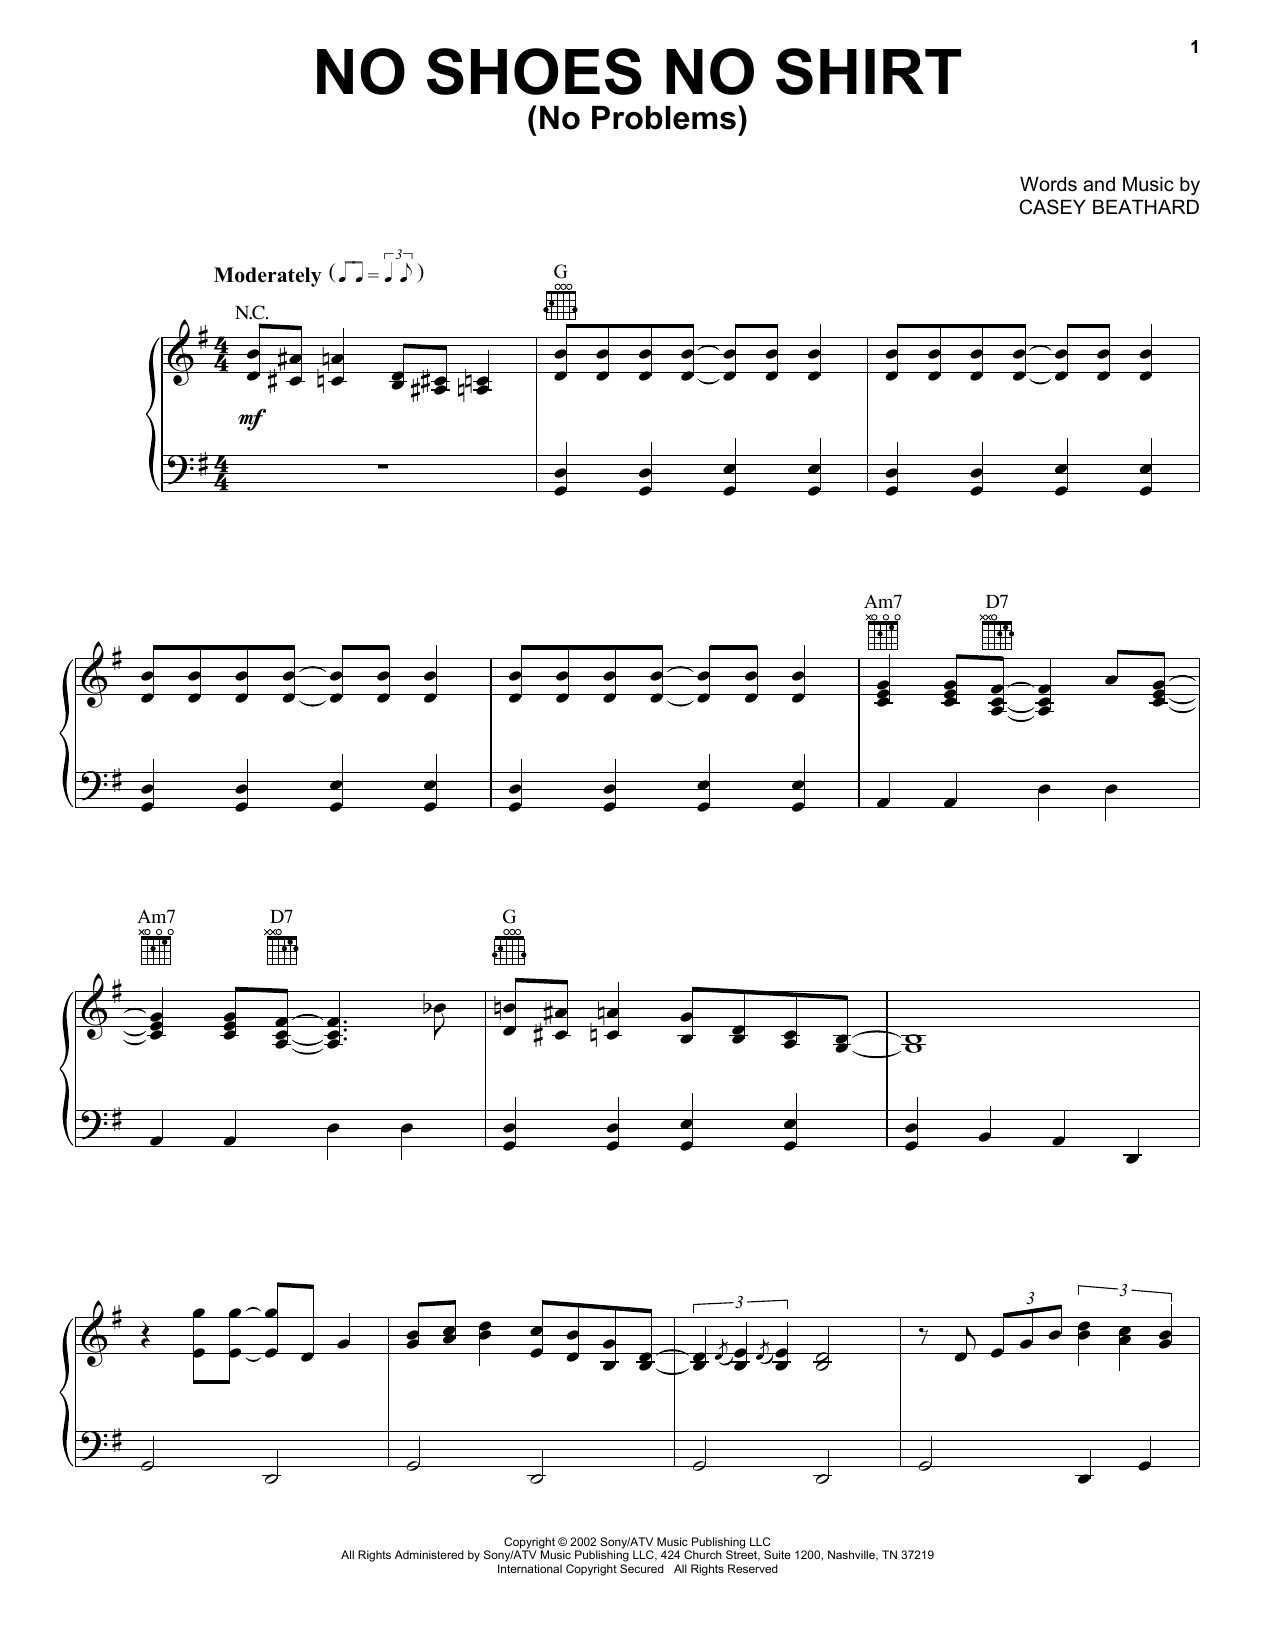 Kenny Chesney No Shoes No Shirt (No Problems) sheet music notes and chords. Download Printable PDF.